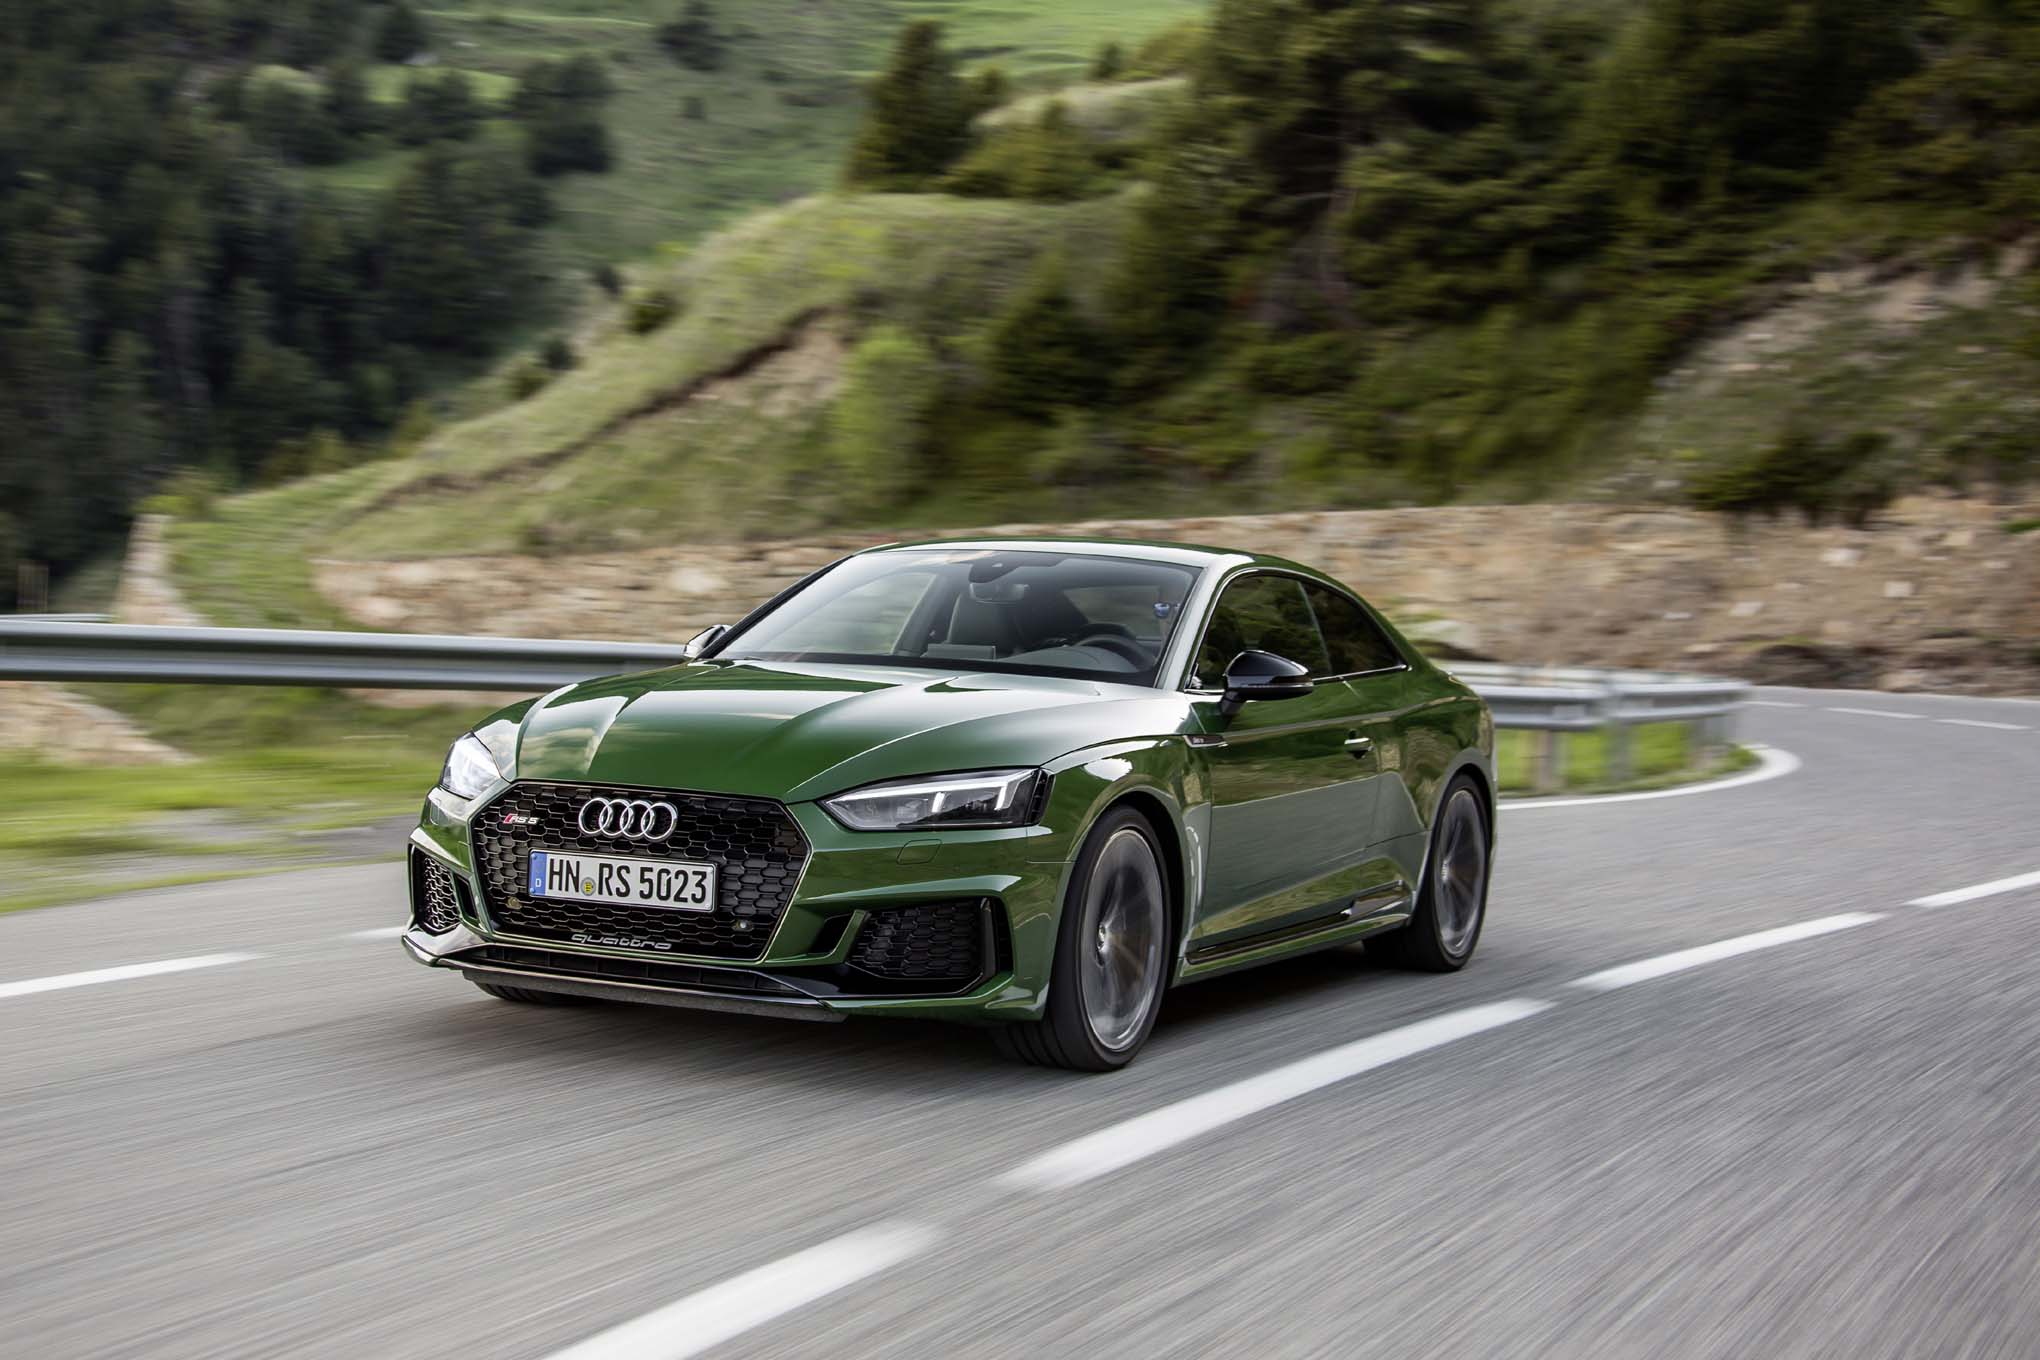 2018 Audi RS 5 Coupe Front Three Quarter In Motion 09